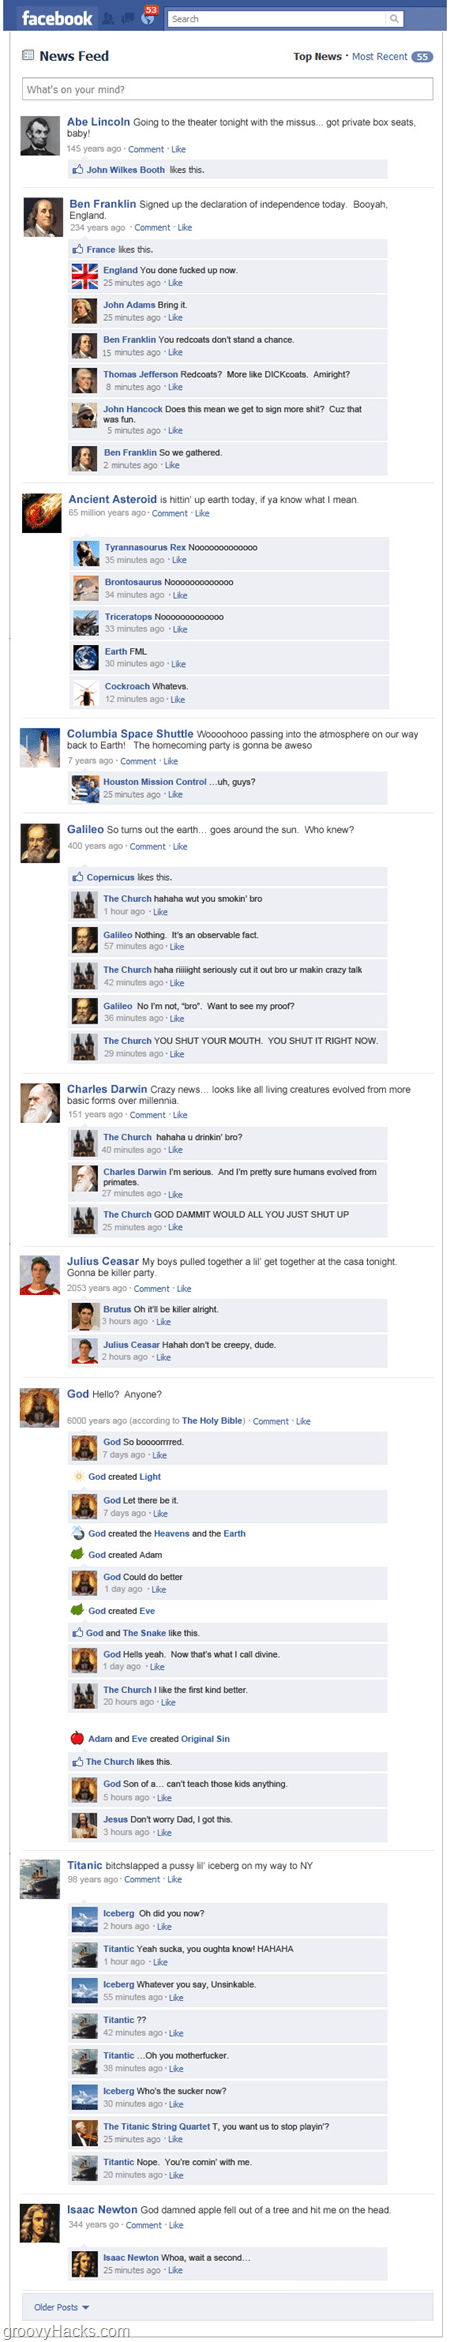 Abe lincoln and other historical figures on Facebook